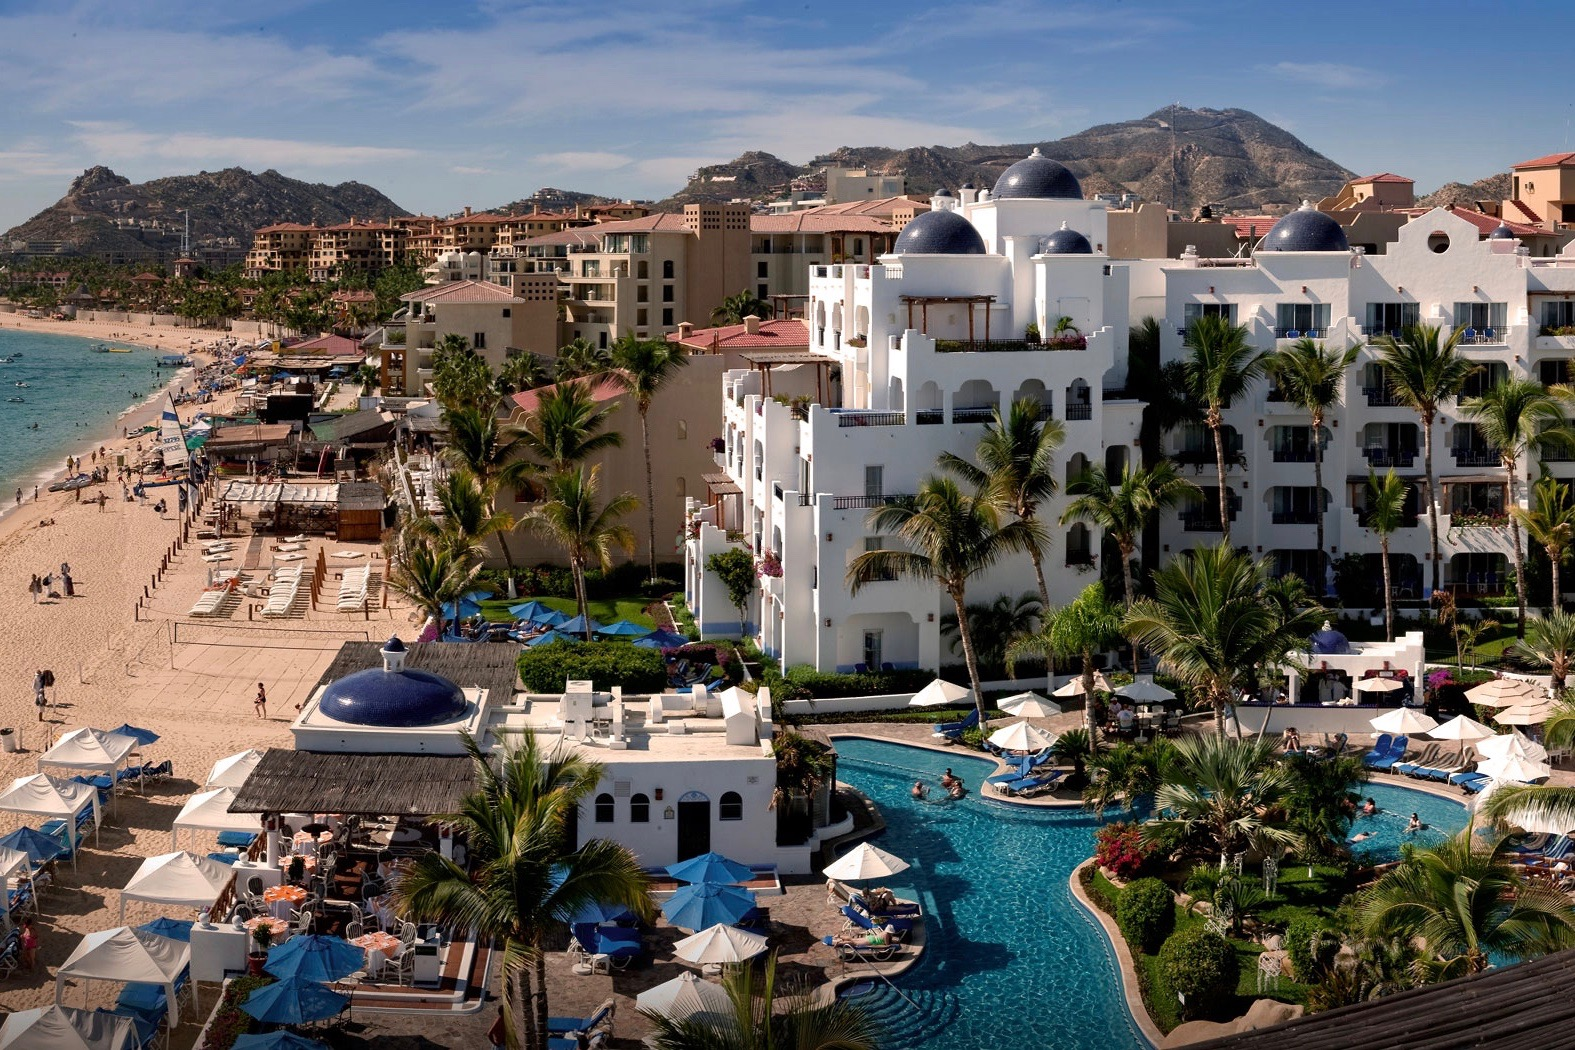 Pueblo Bonito resort in Cabo